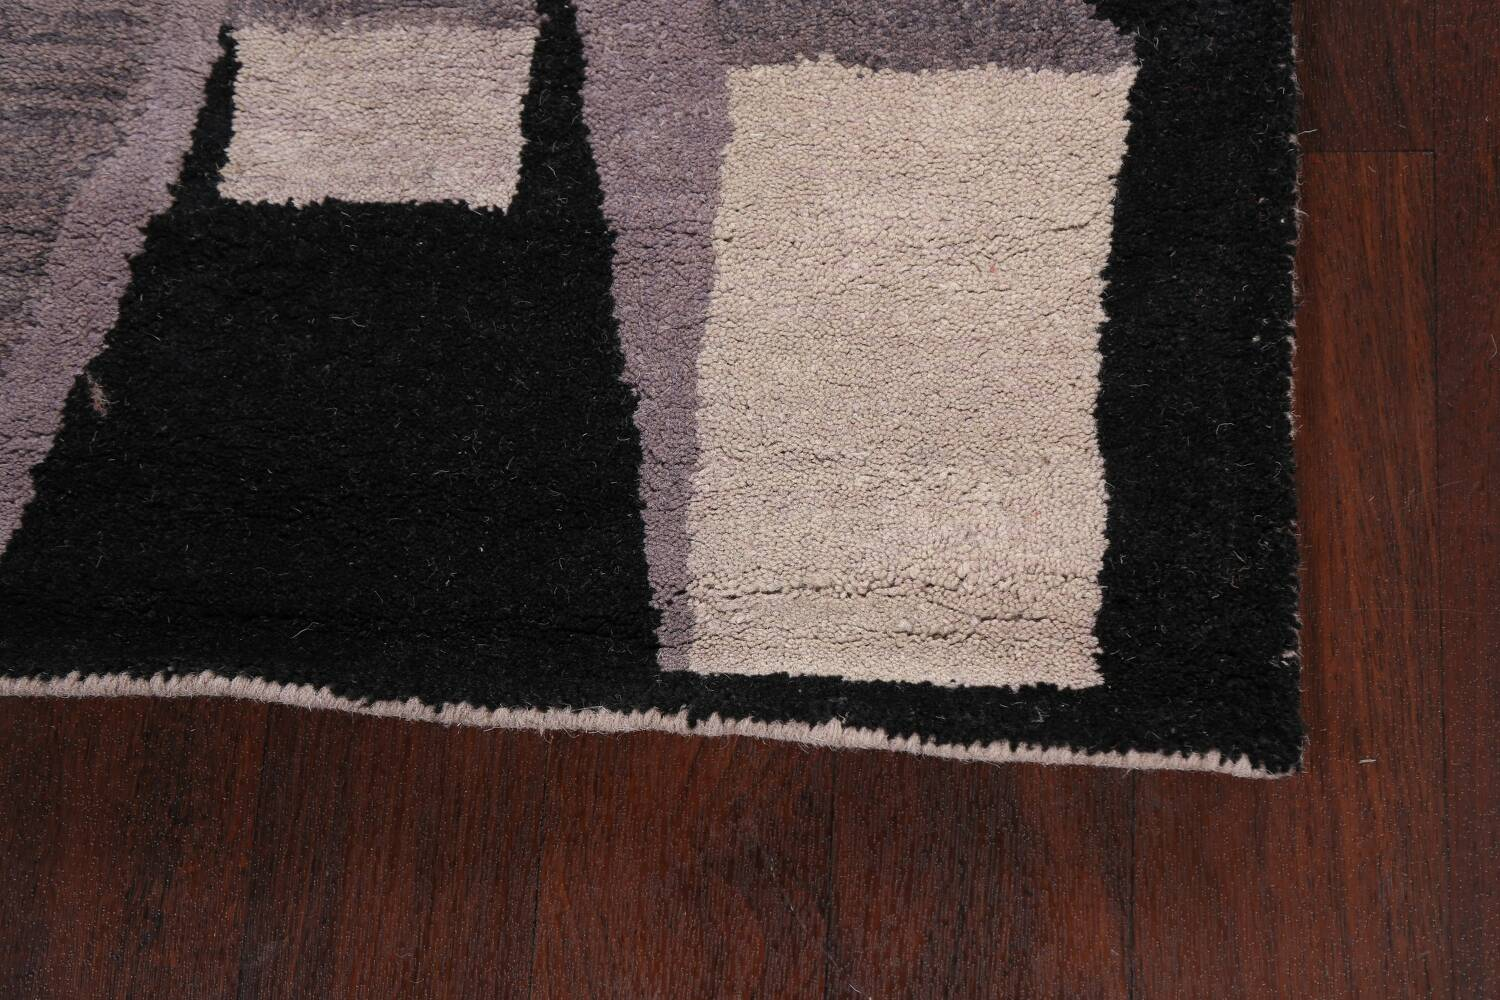 Contemporary Runner Rug 3x8 image 5